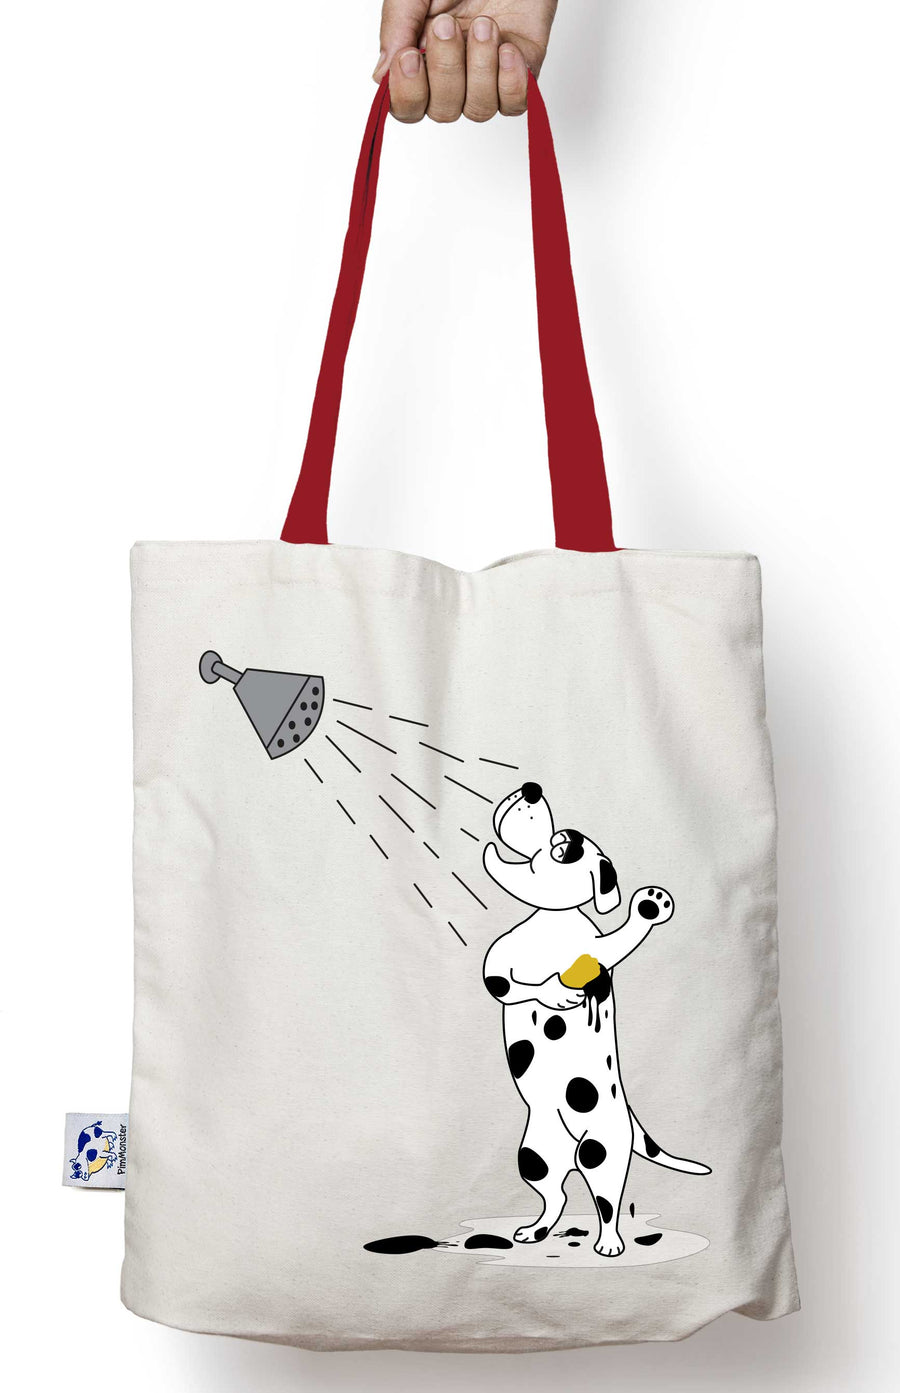 Dallmatial lover? Becareful when you give him a bath that his spots don't go away. He is now on canvas tote bag